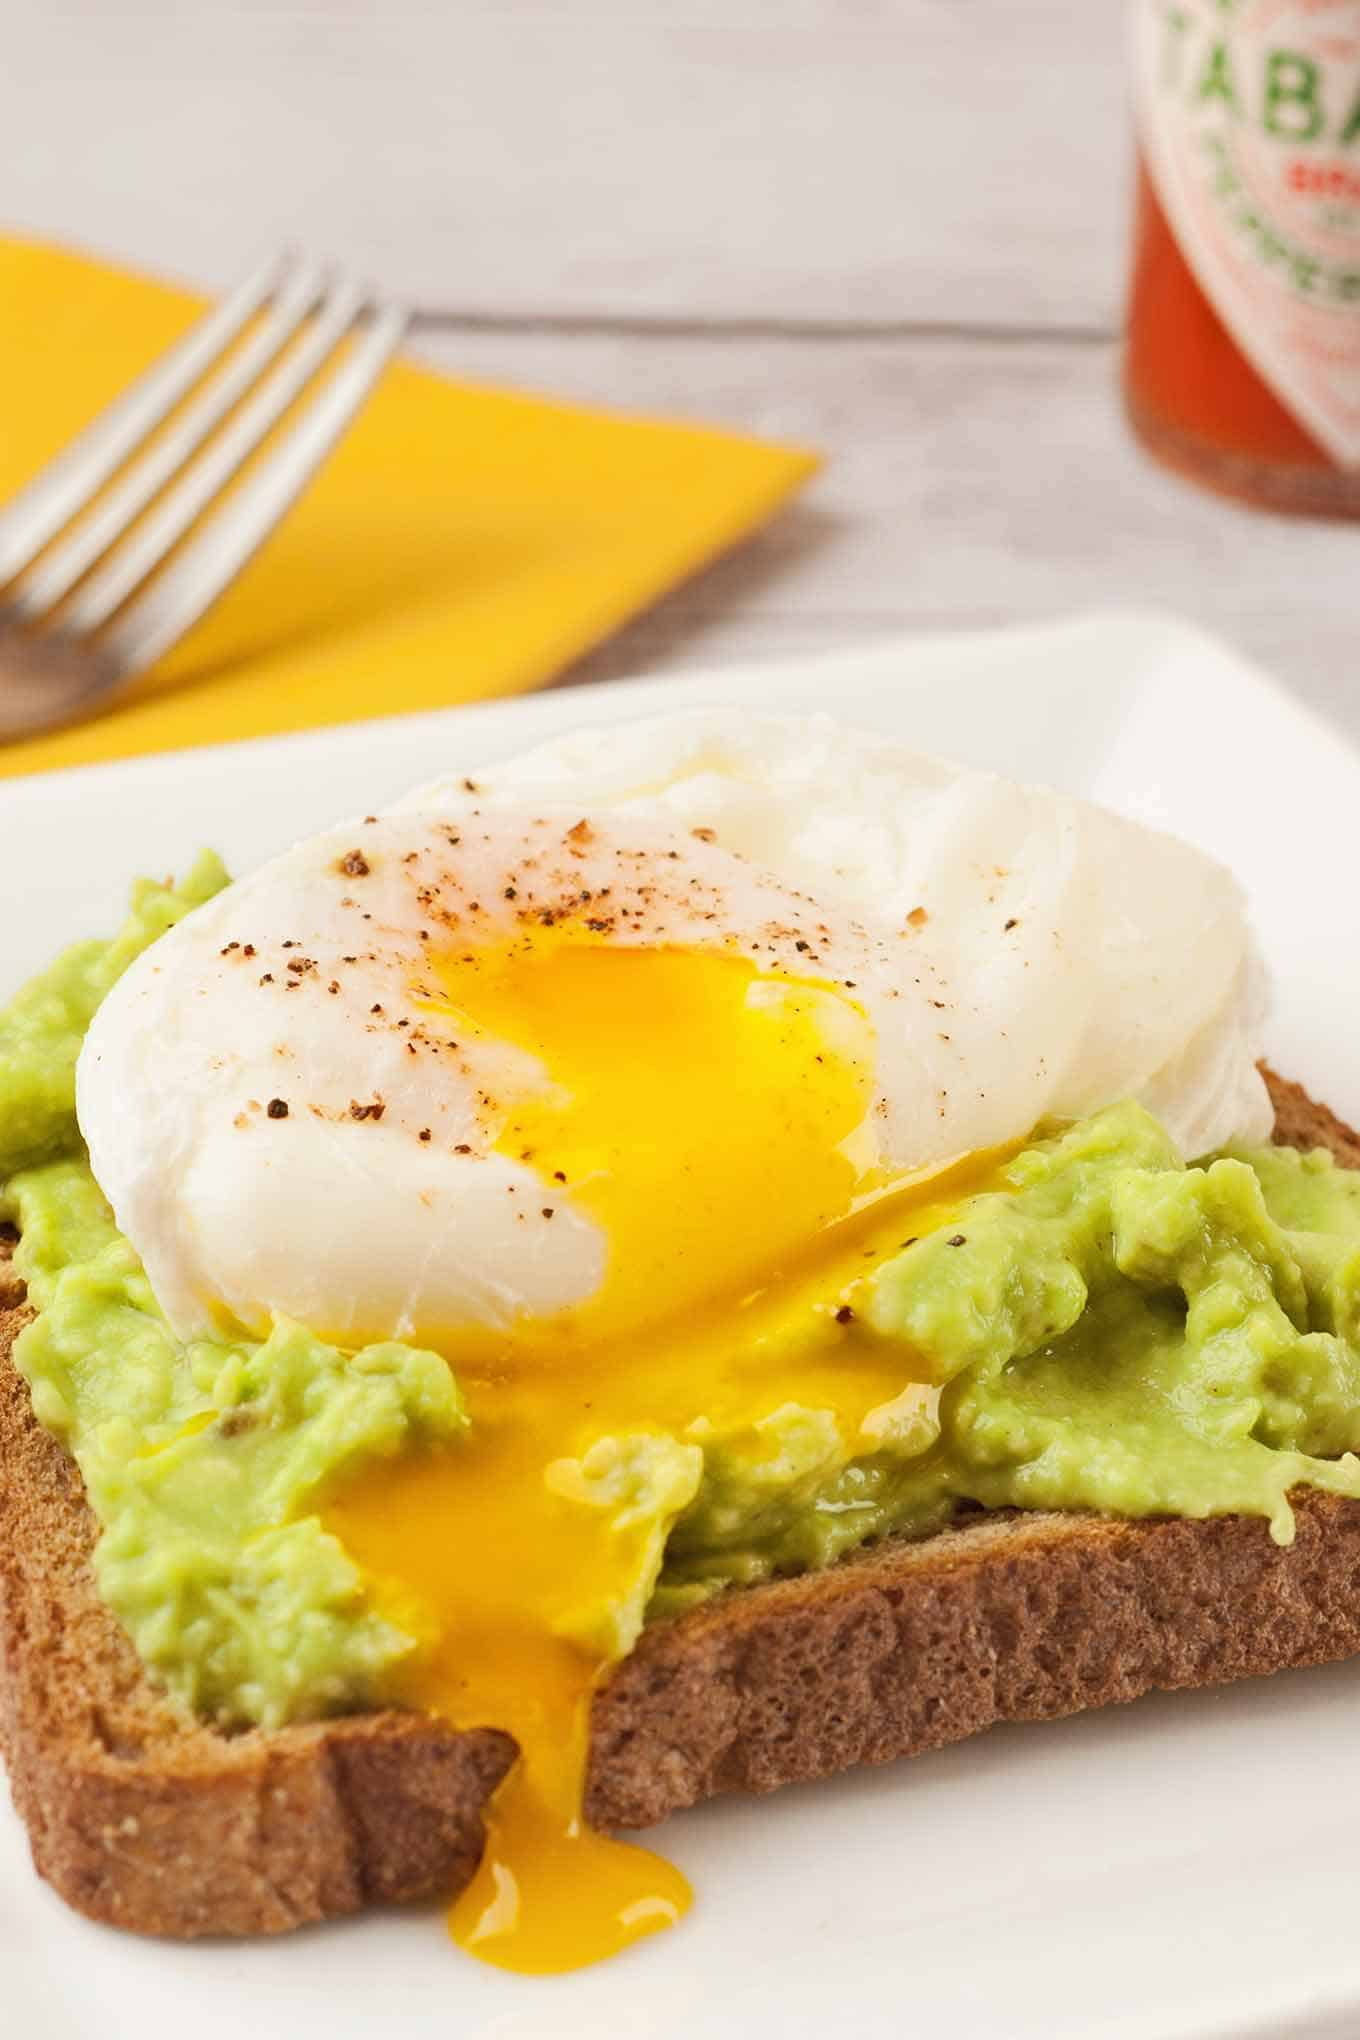 Plate of wheat toast topped with mashed avocado and a poached egg with Tabasco sauce in the background.